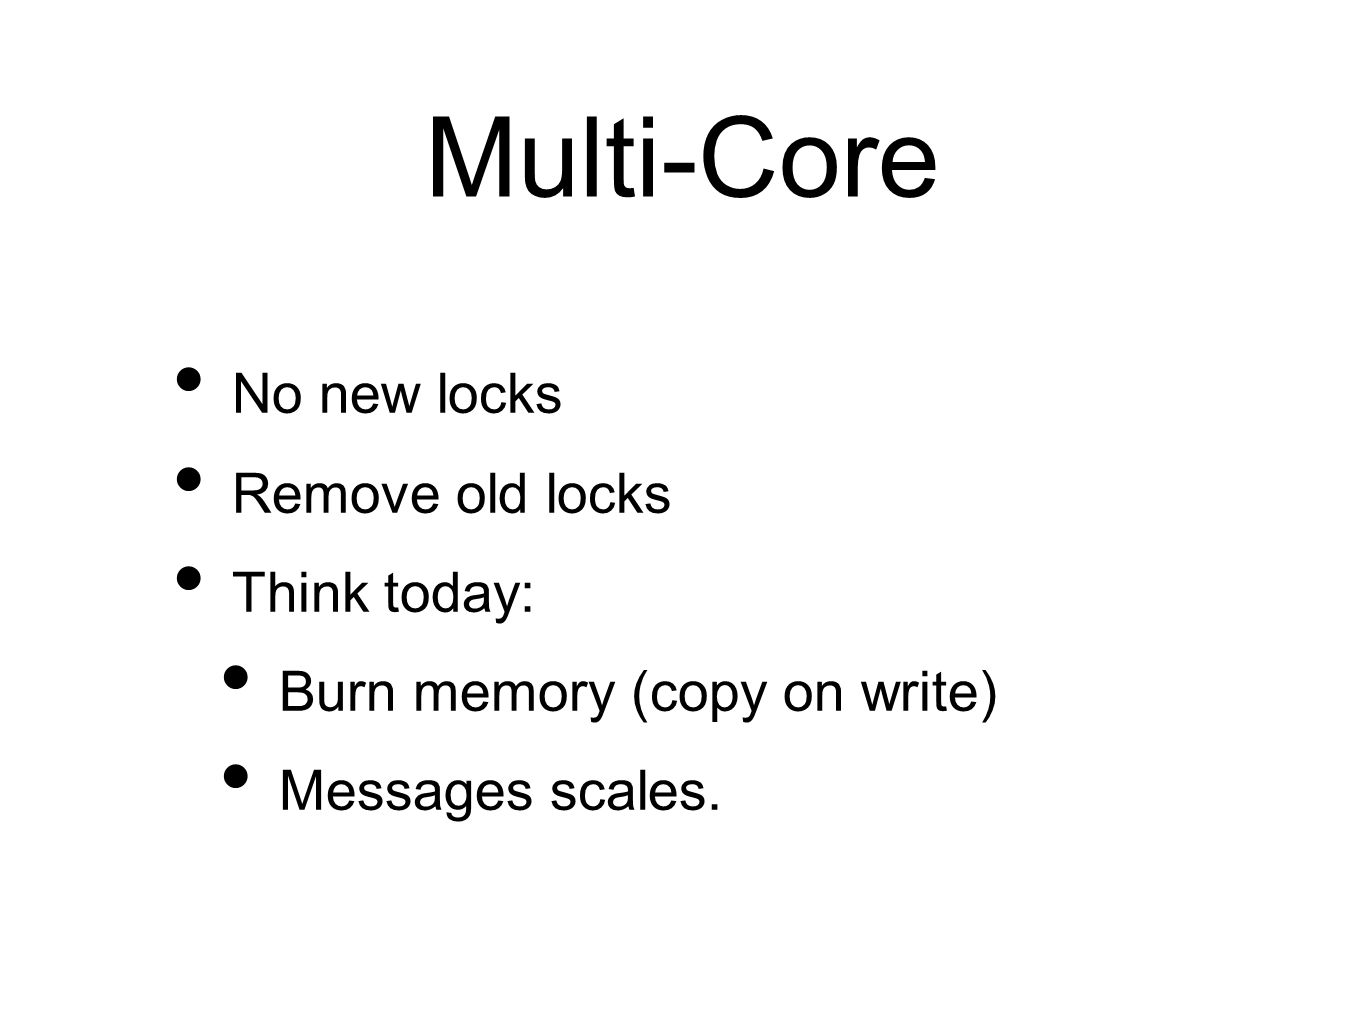 Multi-Core No new locks Remove old locks Think today: Burn memory (copy on write) Messages scales.